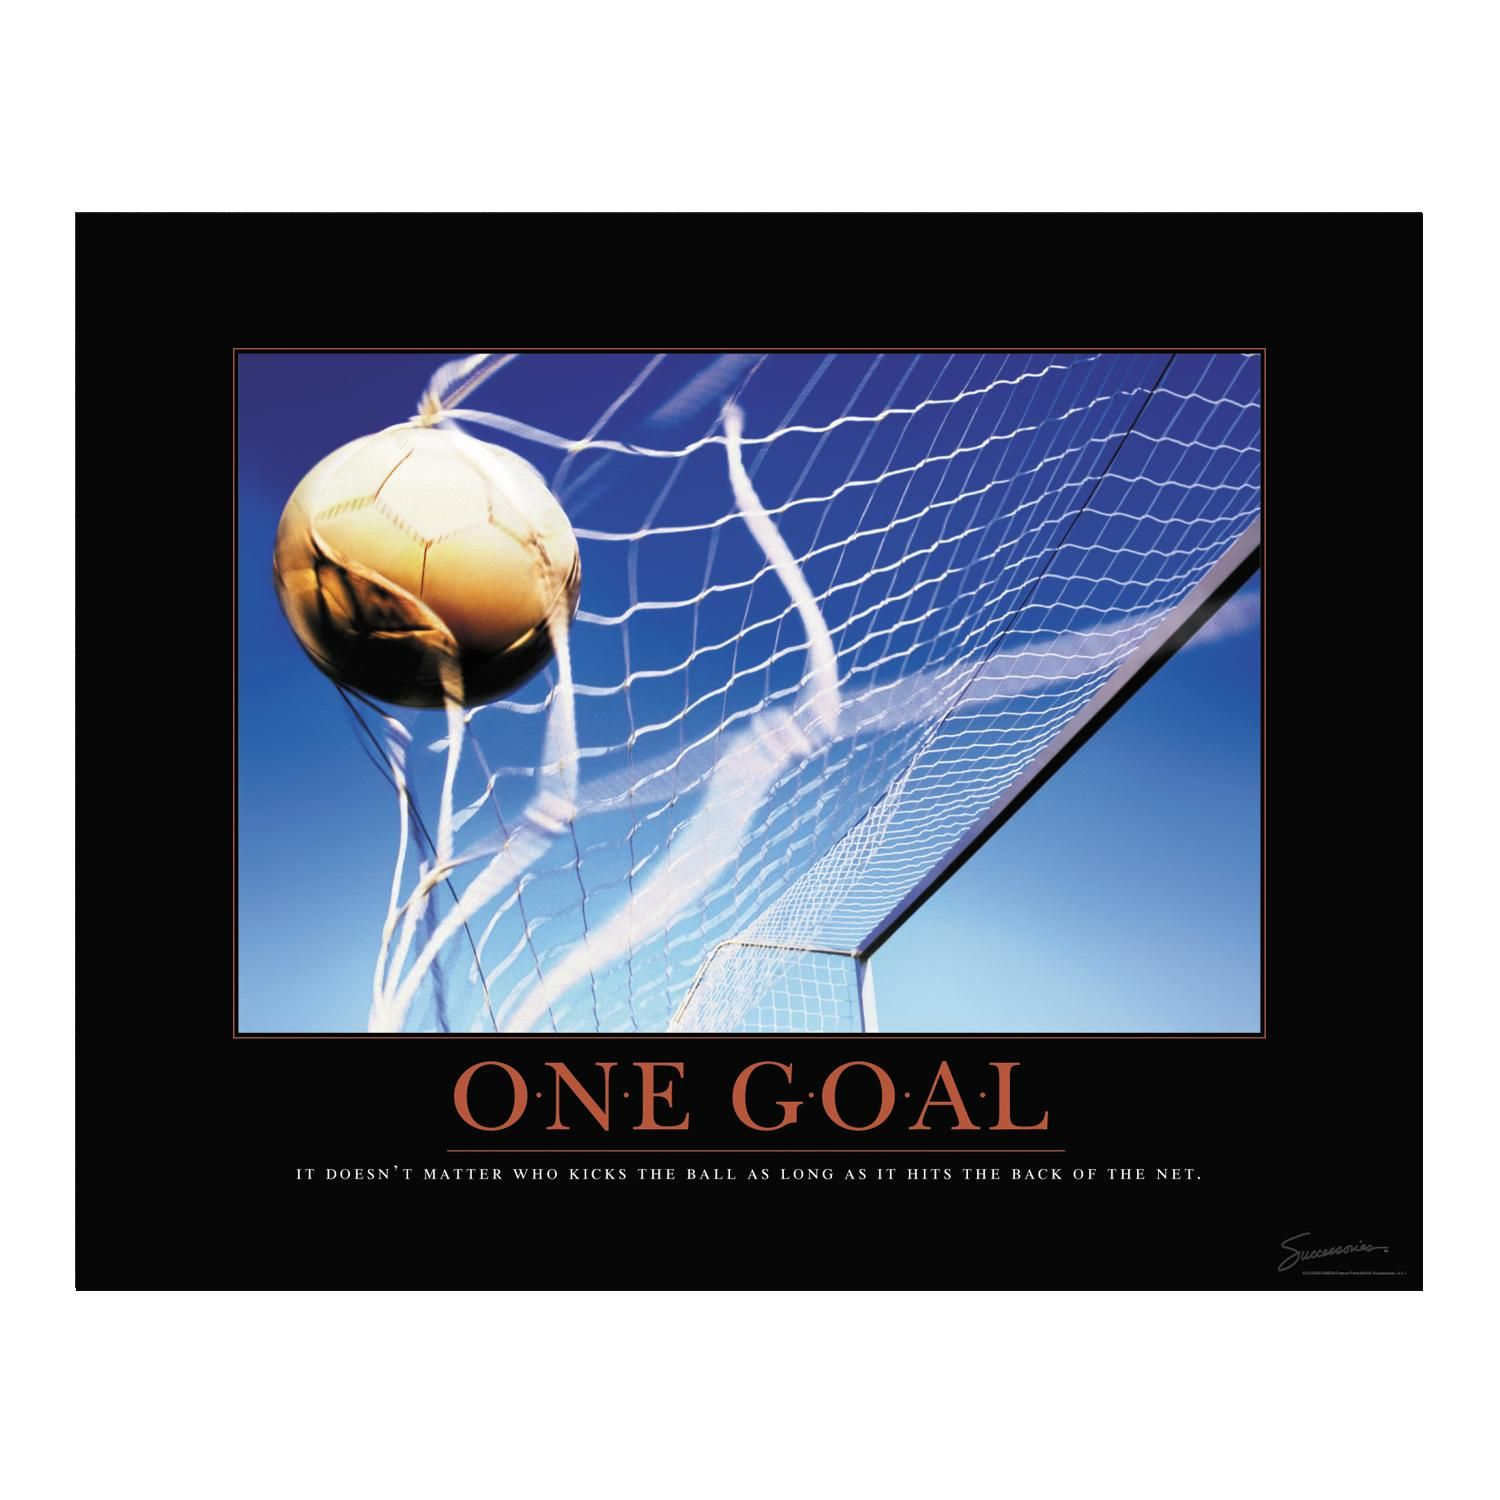 Inspiration Soccer Quotes: One Goal Soccer Ball Motivational Poster